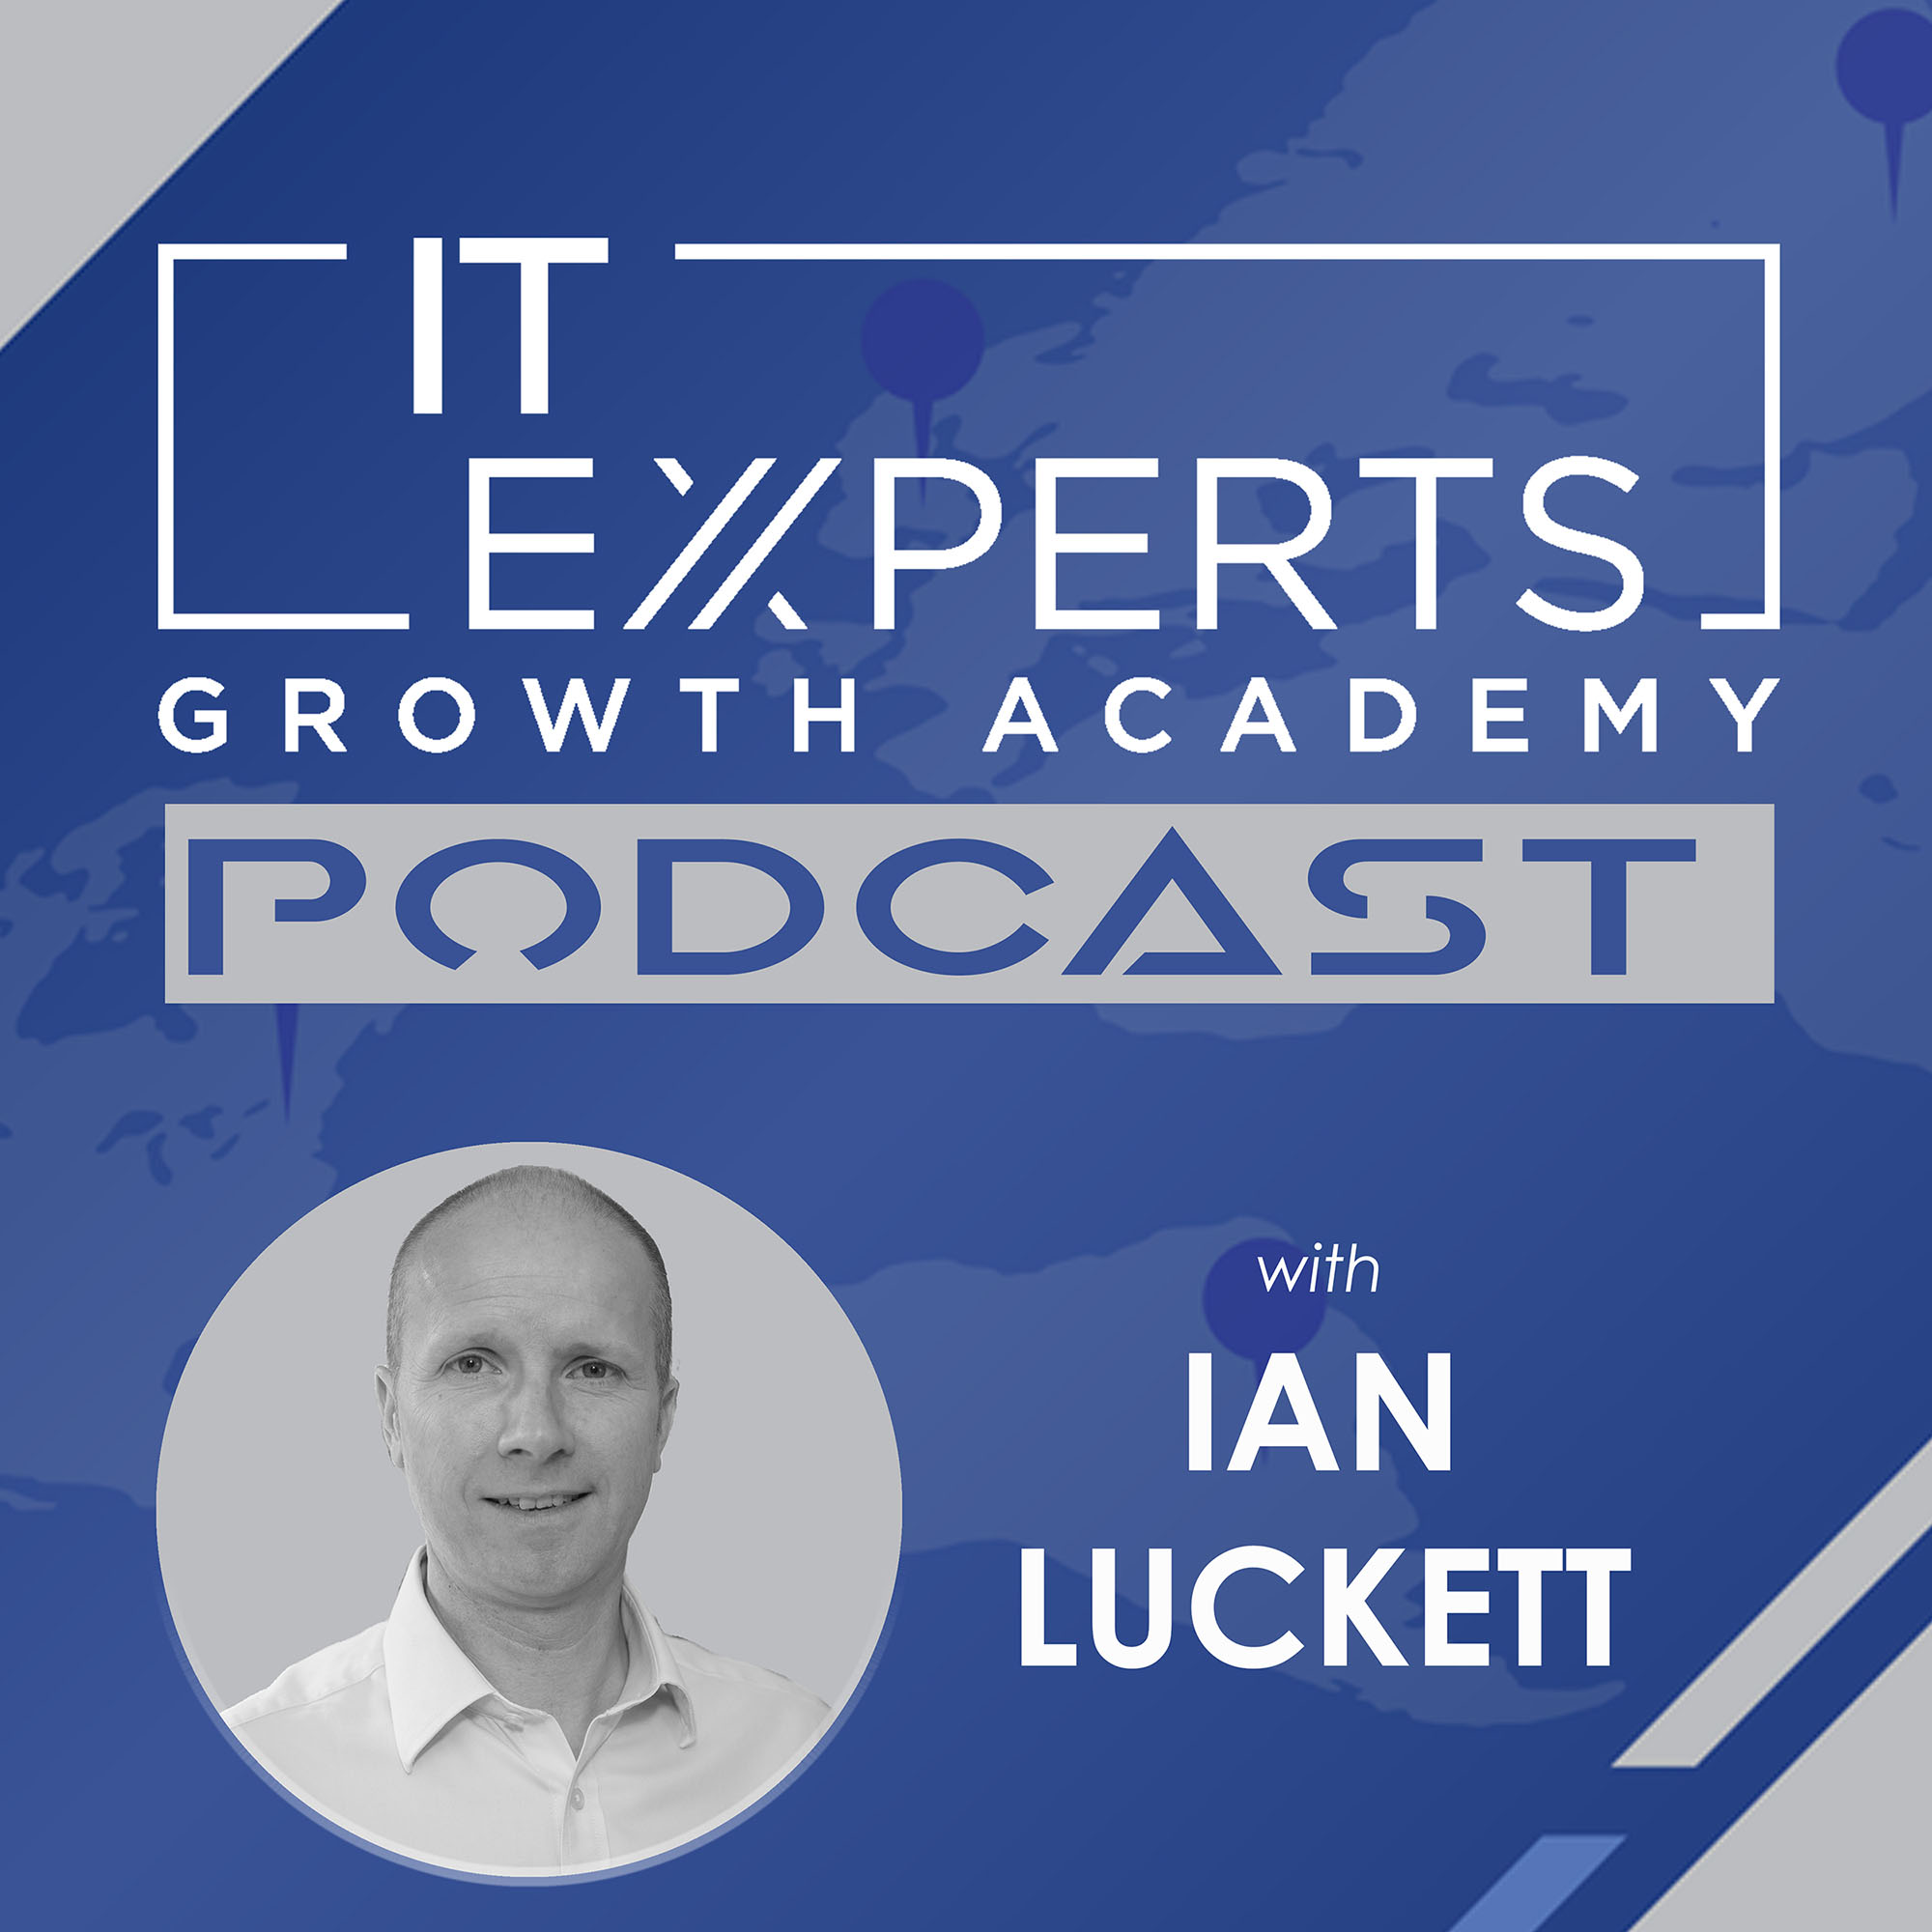 IT Experts Growth Academy Podcast with Ian Luckett